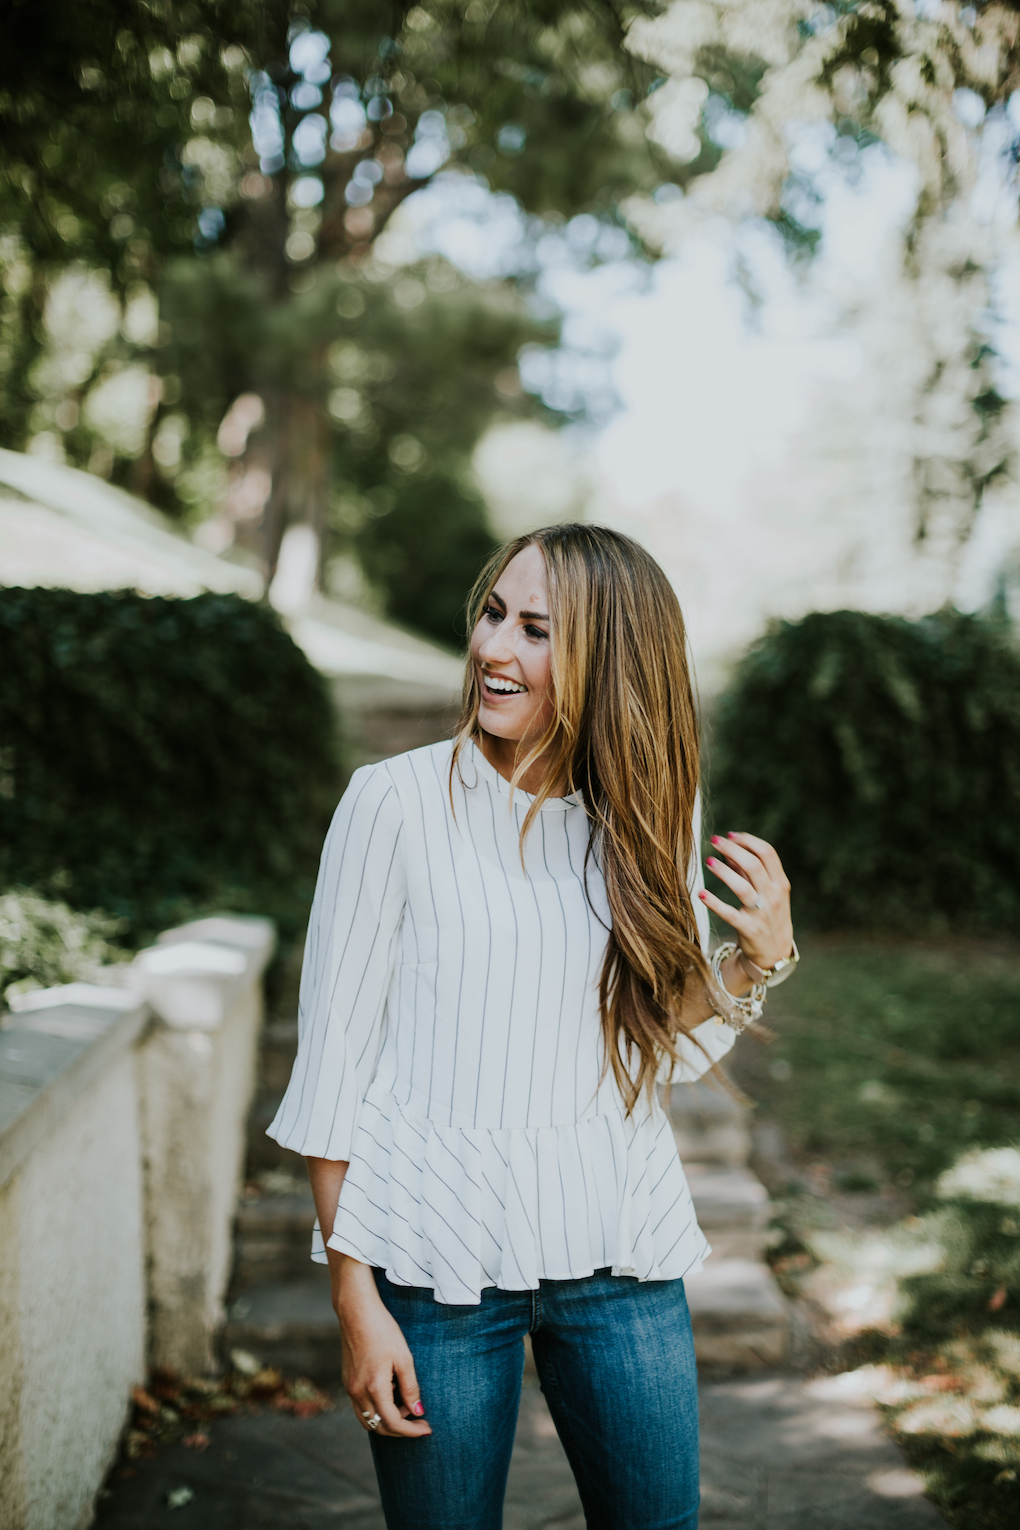 girl laughing wearing black and white stripe peplum top that is oversized and high waisted denim jeans